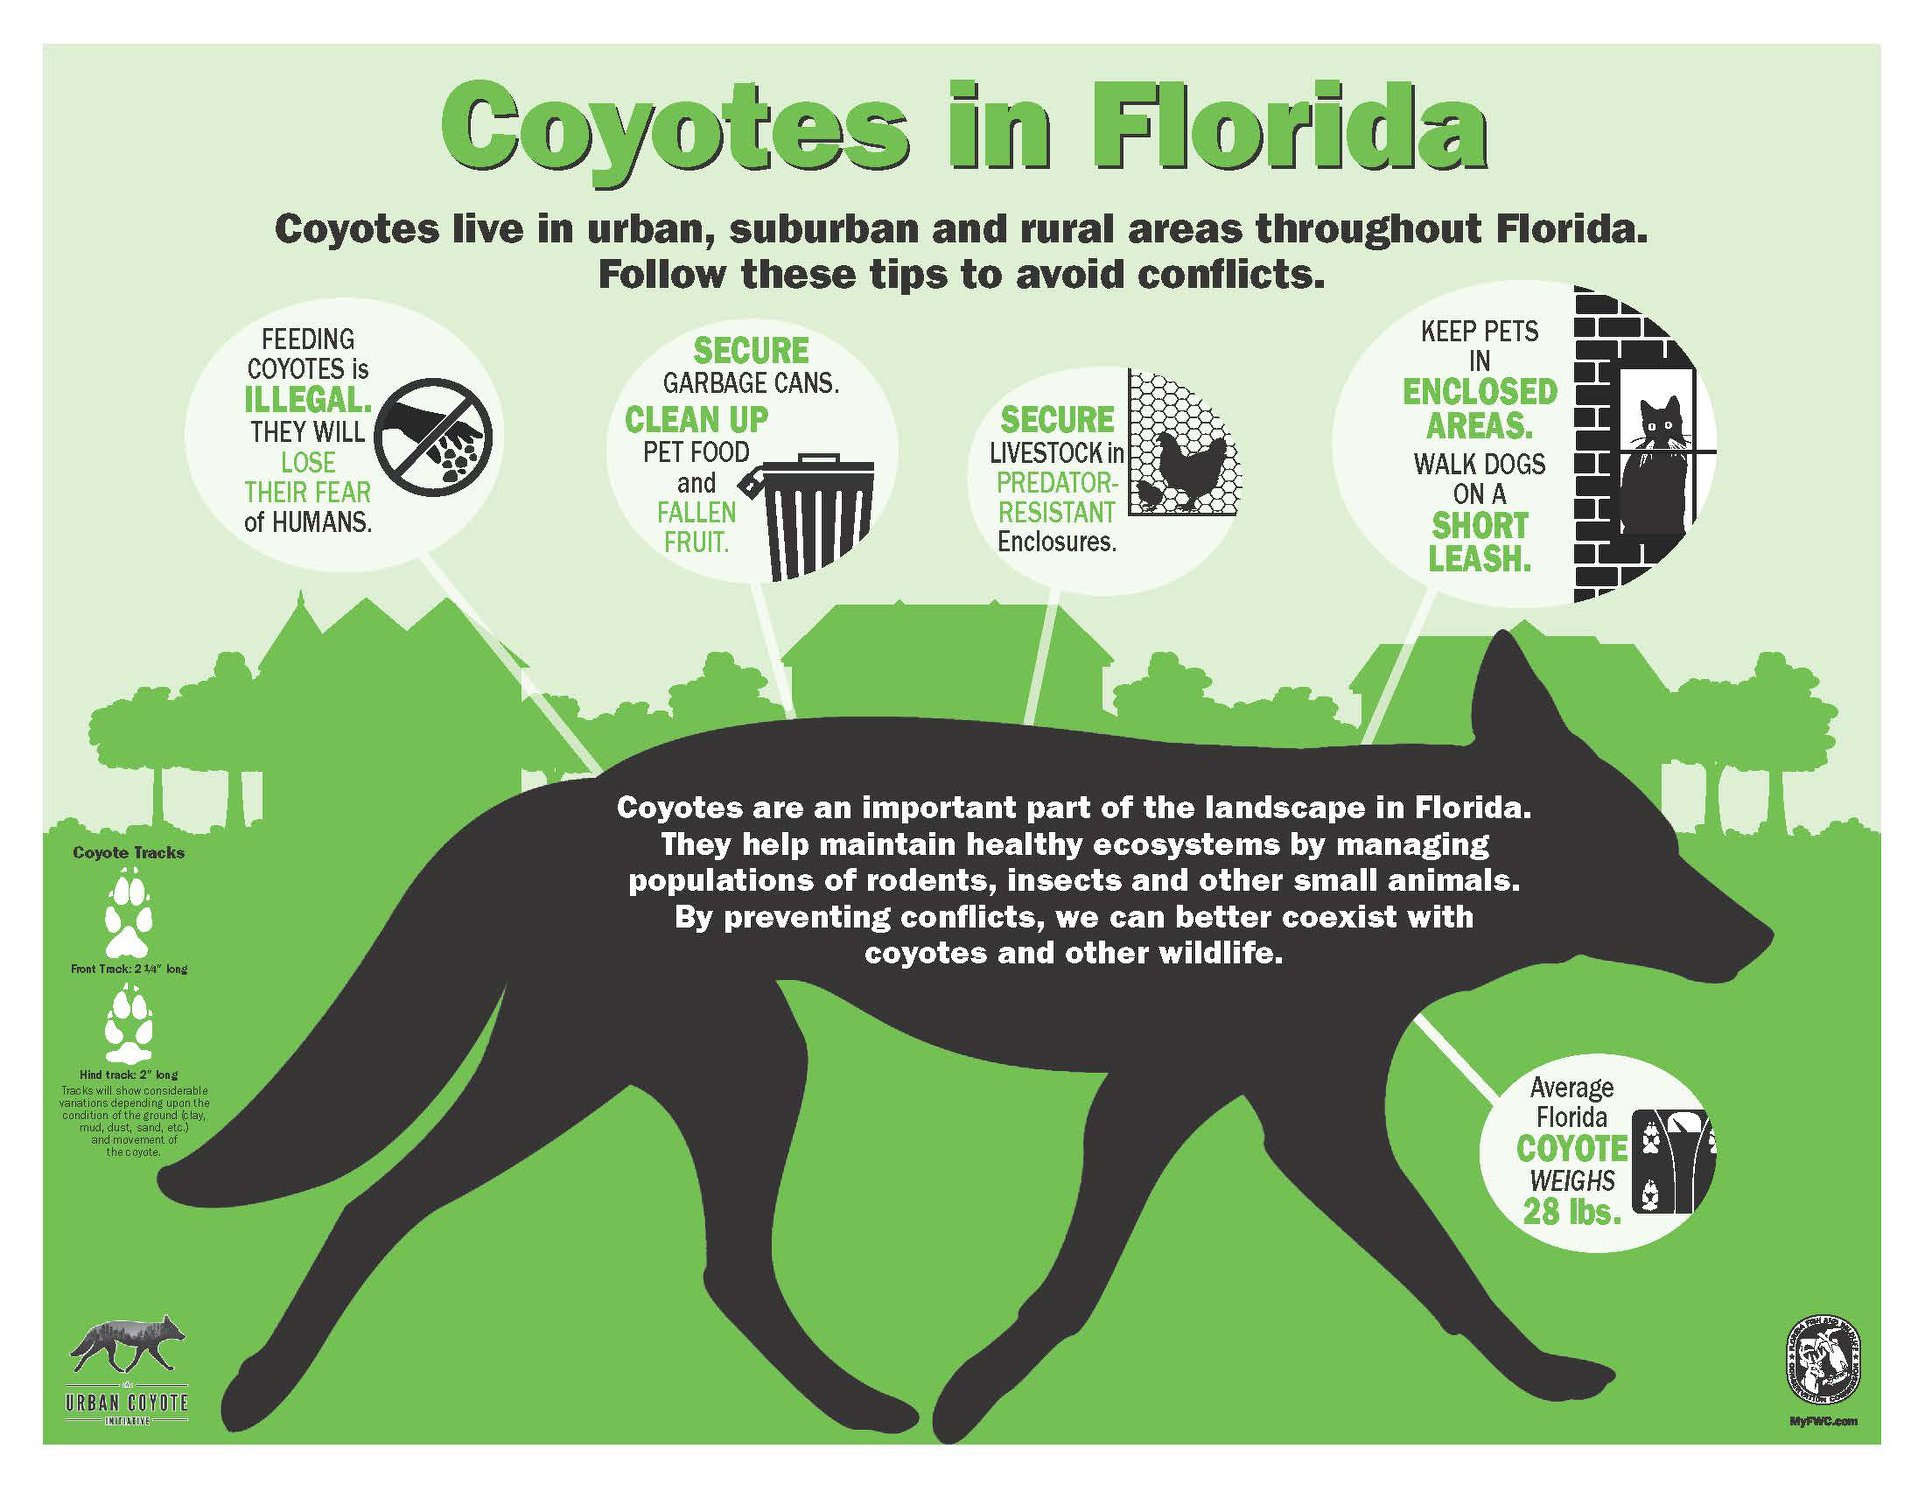 Coyotes in Florida